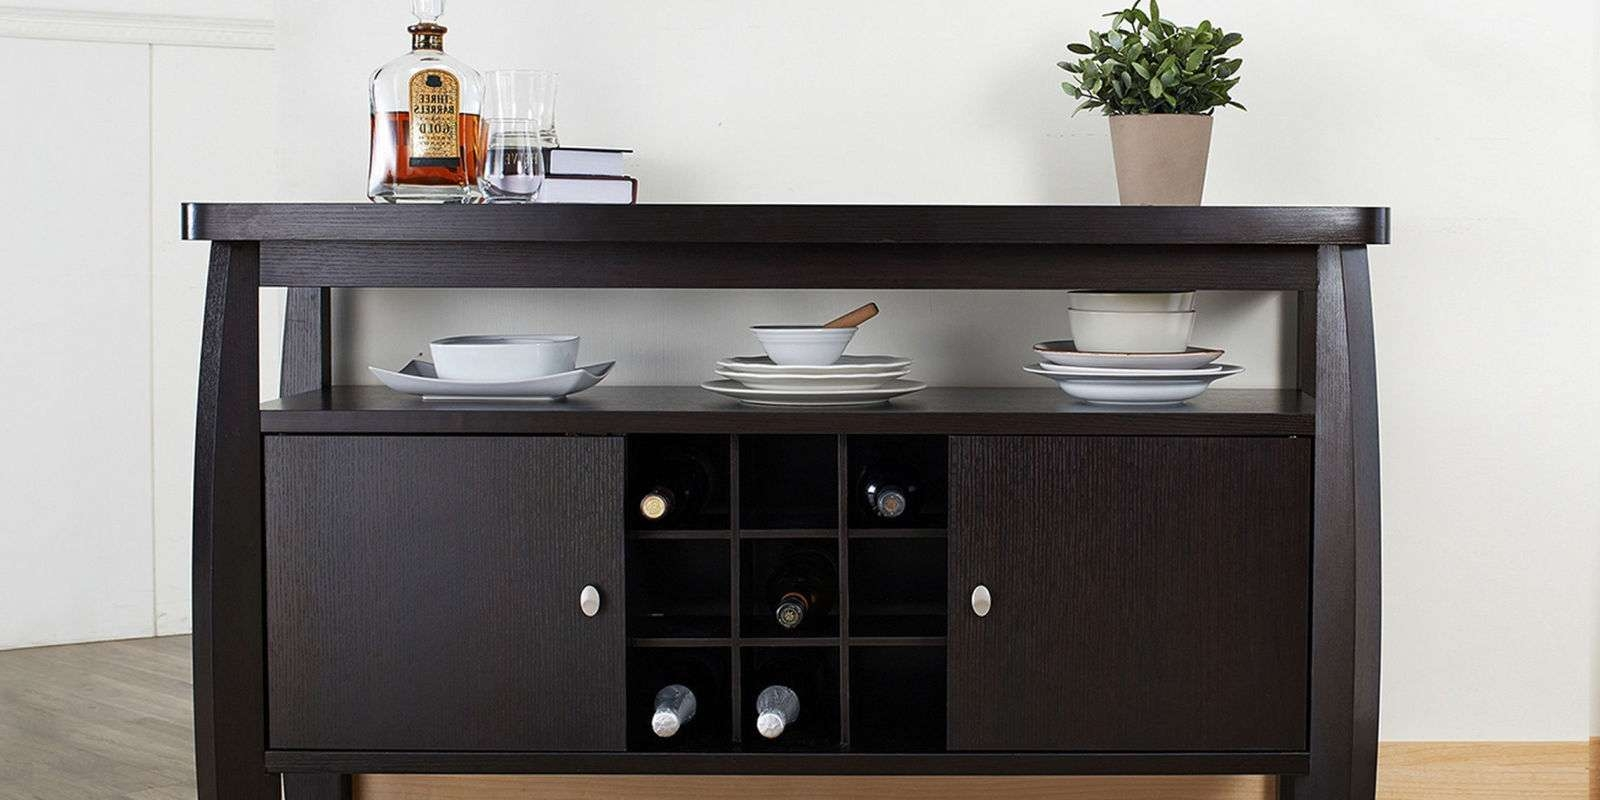 11 Best Sideboards And Buffets In 2018 – Reviews Of Sideboards With Regard To Dining Room Buffets Sideboards (Gallery 11 of 20)